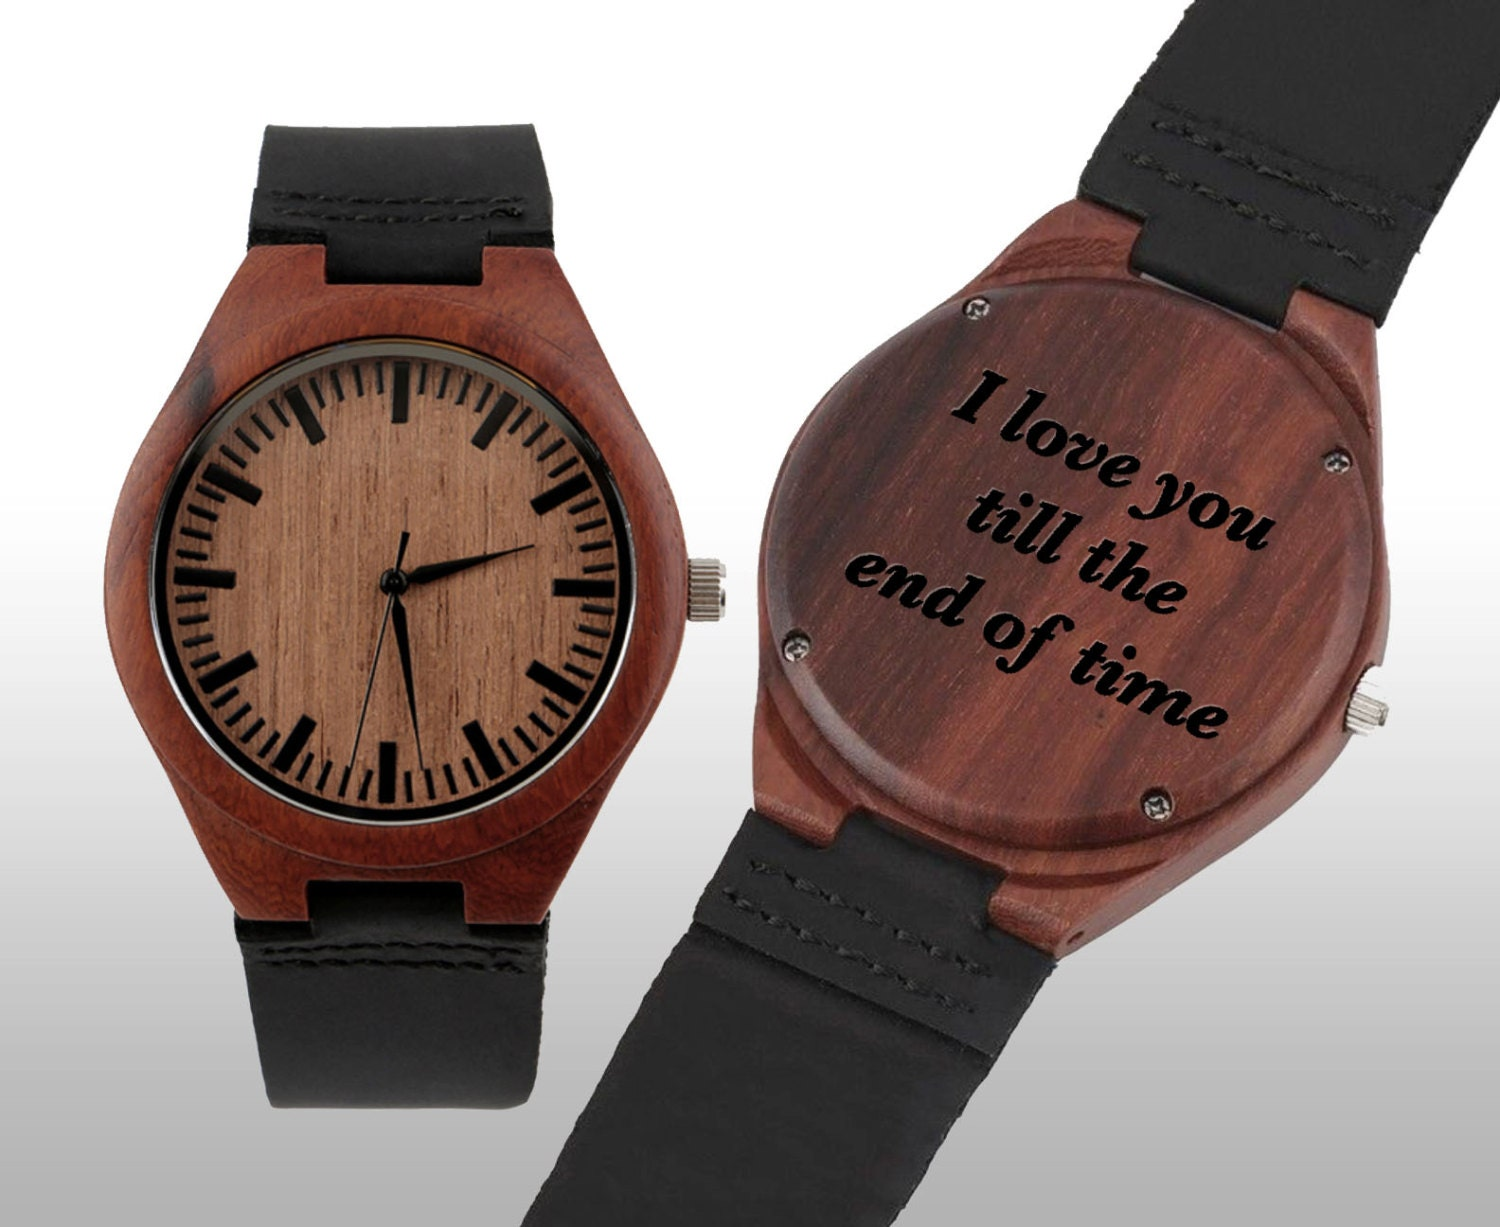 Engraved watch wood watch fathers day engraved wood watch for Watches engraved